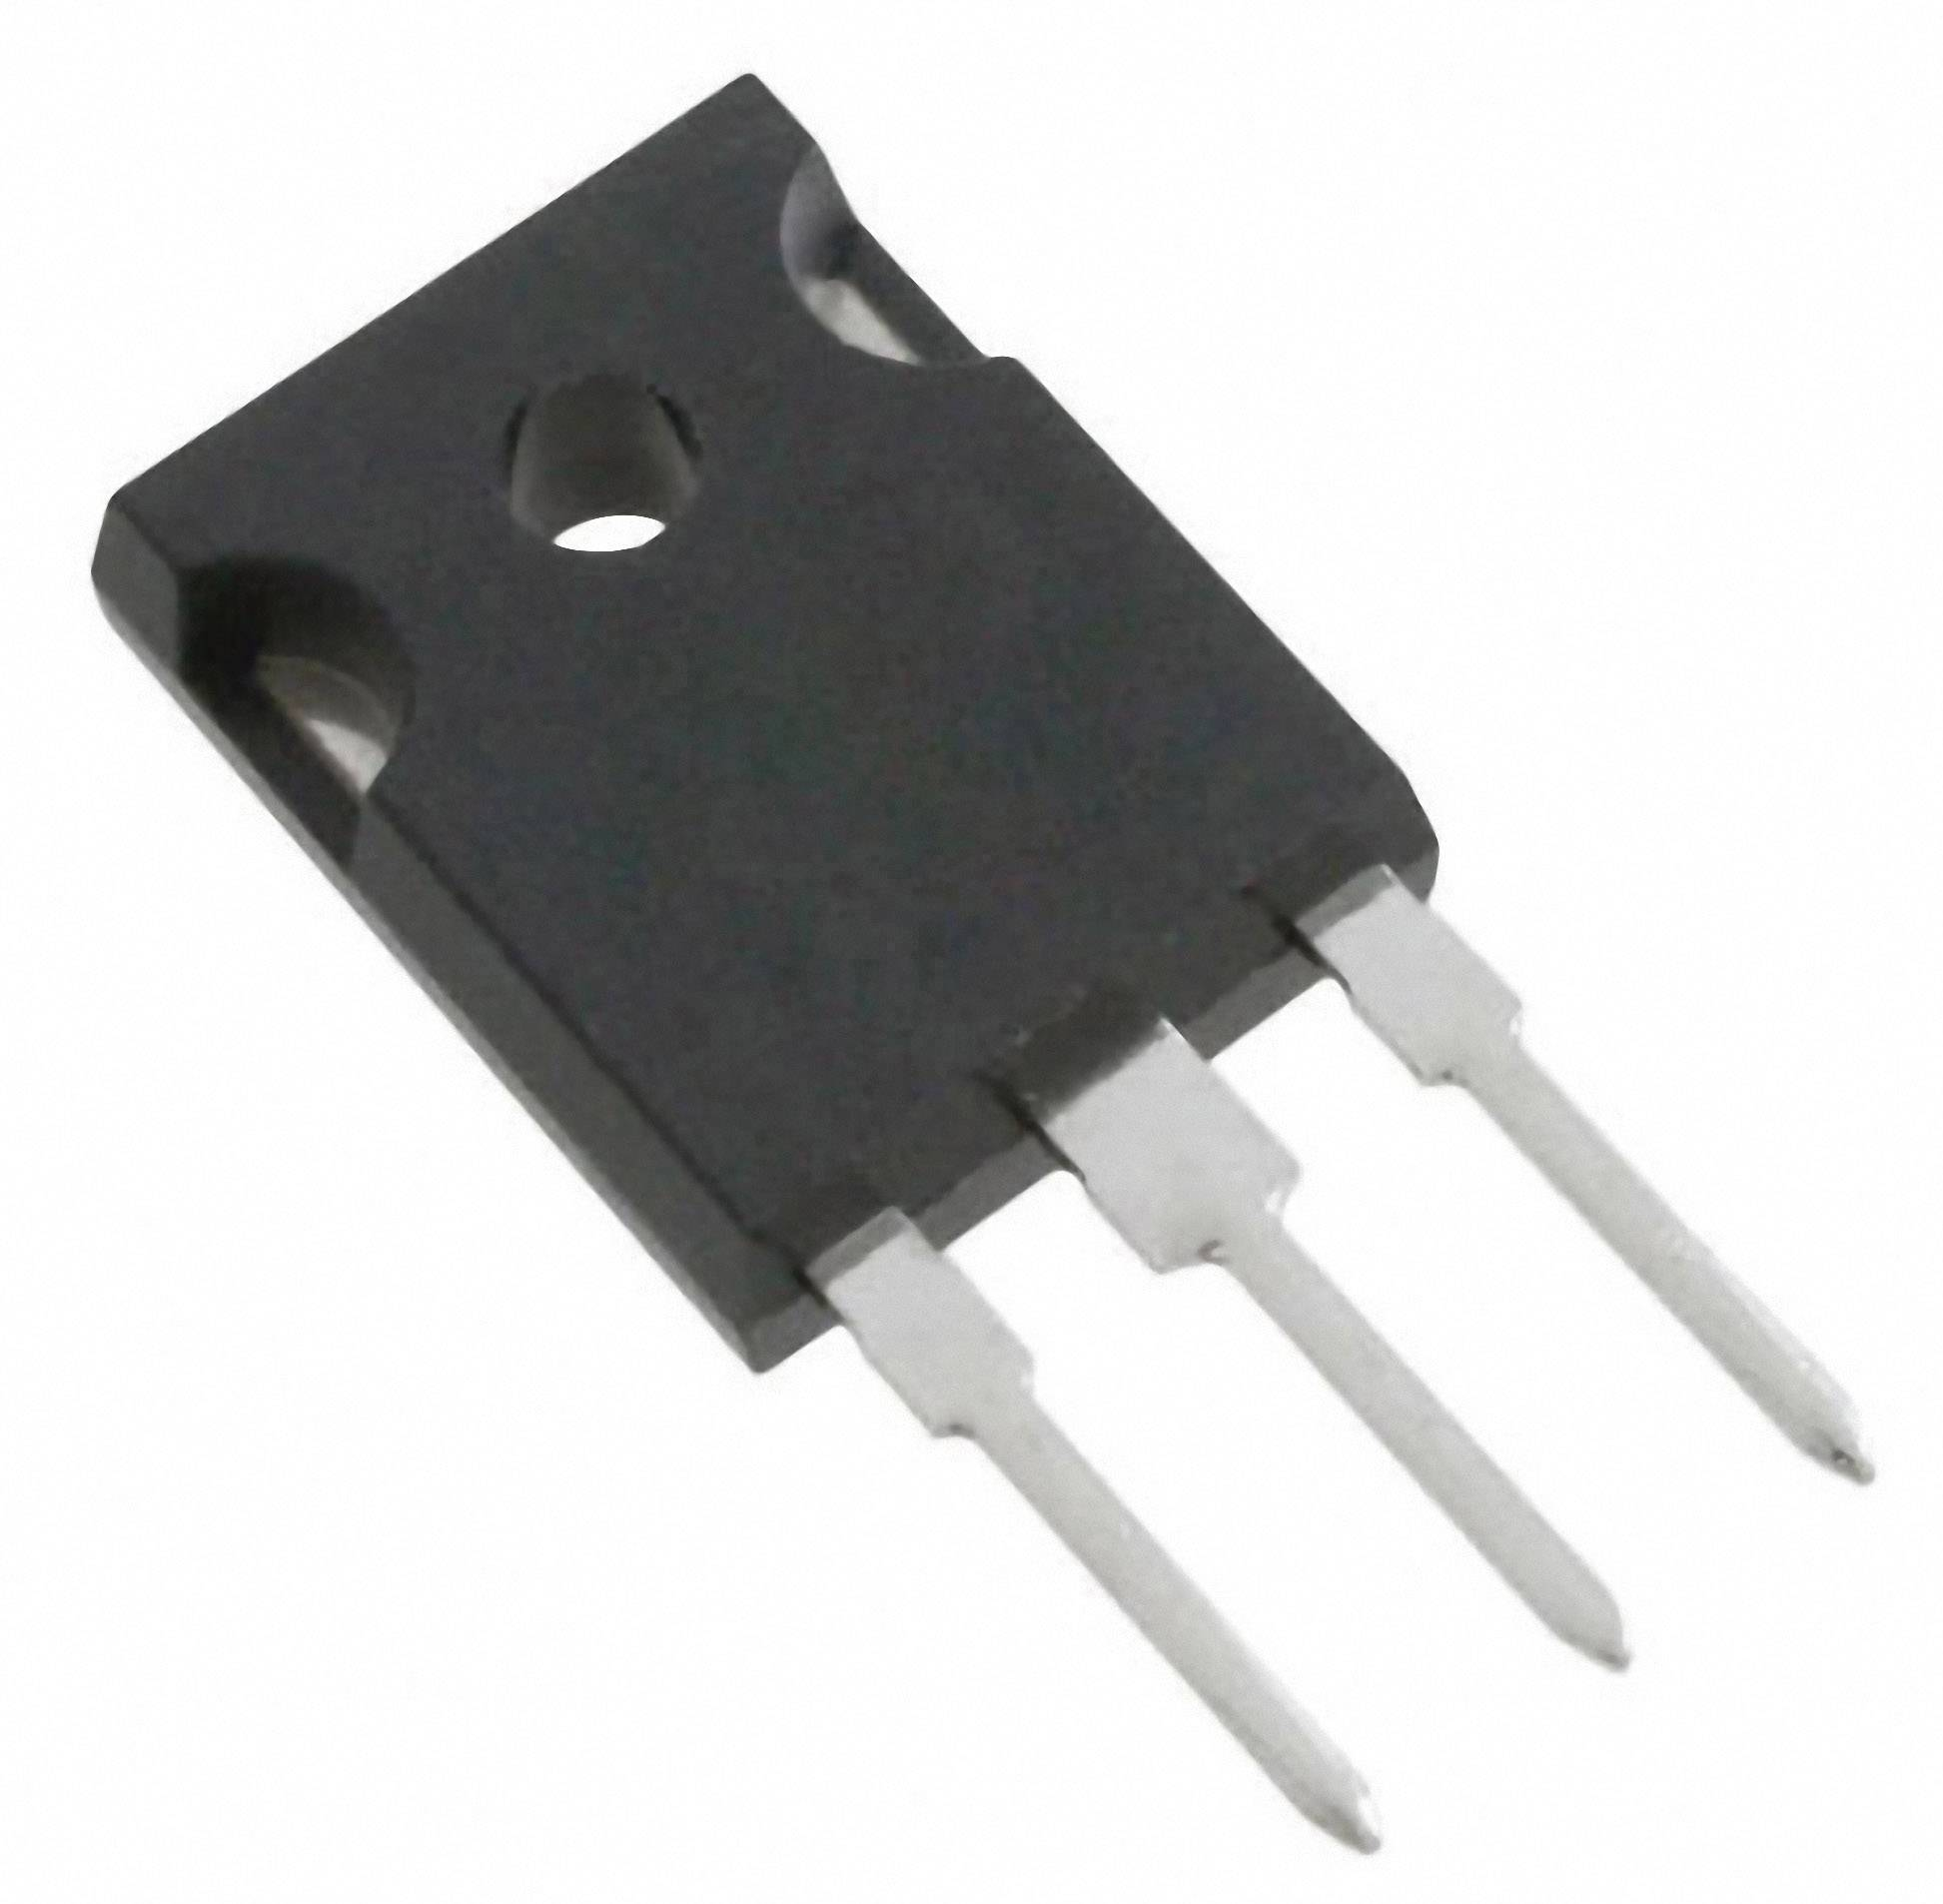 MOSFET Fairchild Semiconductor N kanál N-CH FDH45N50F_F133 TO-247-3 FSC